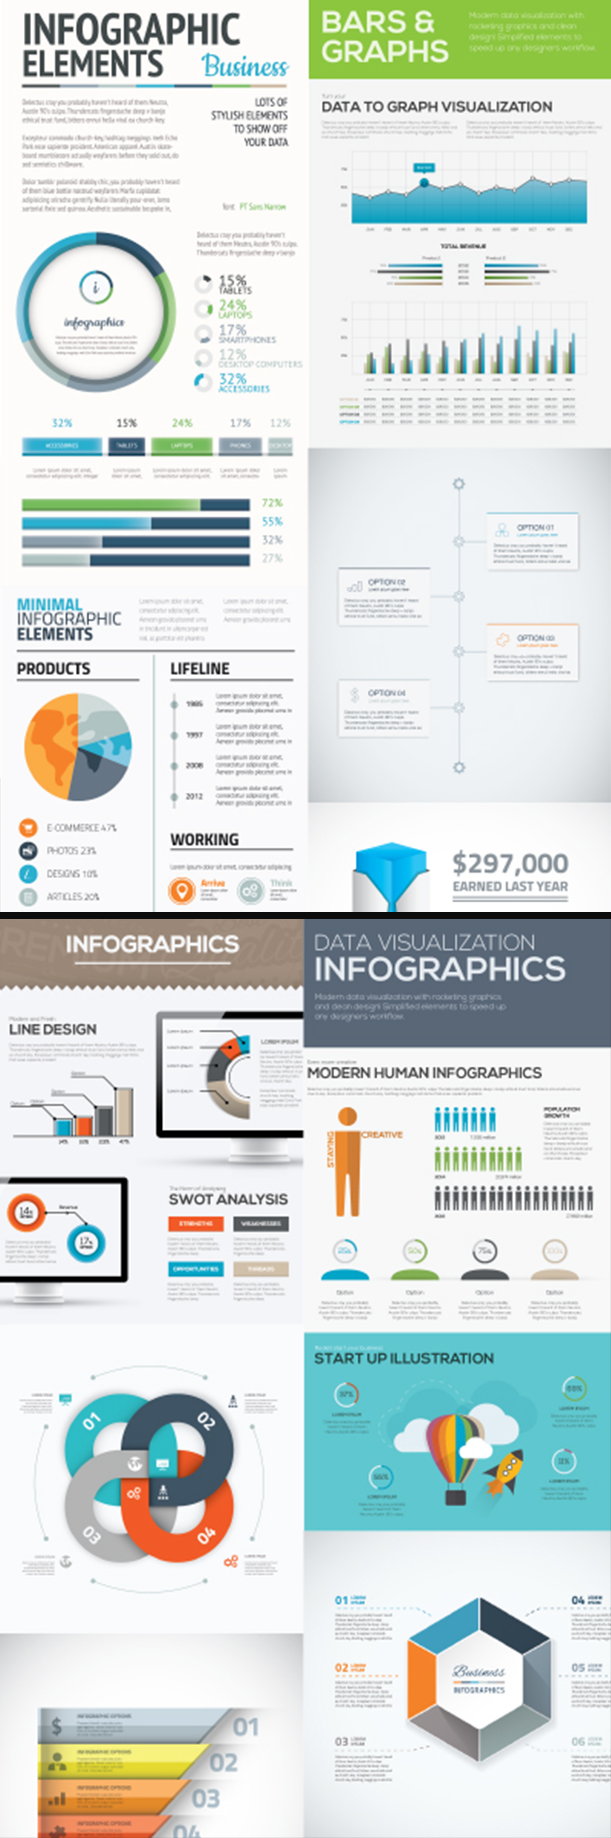 free-infographic-element-template